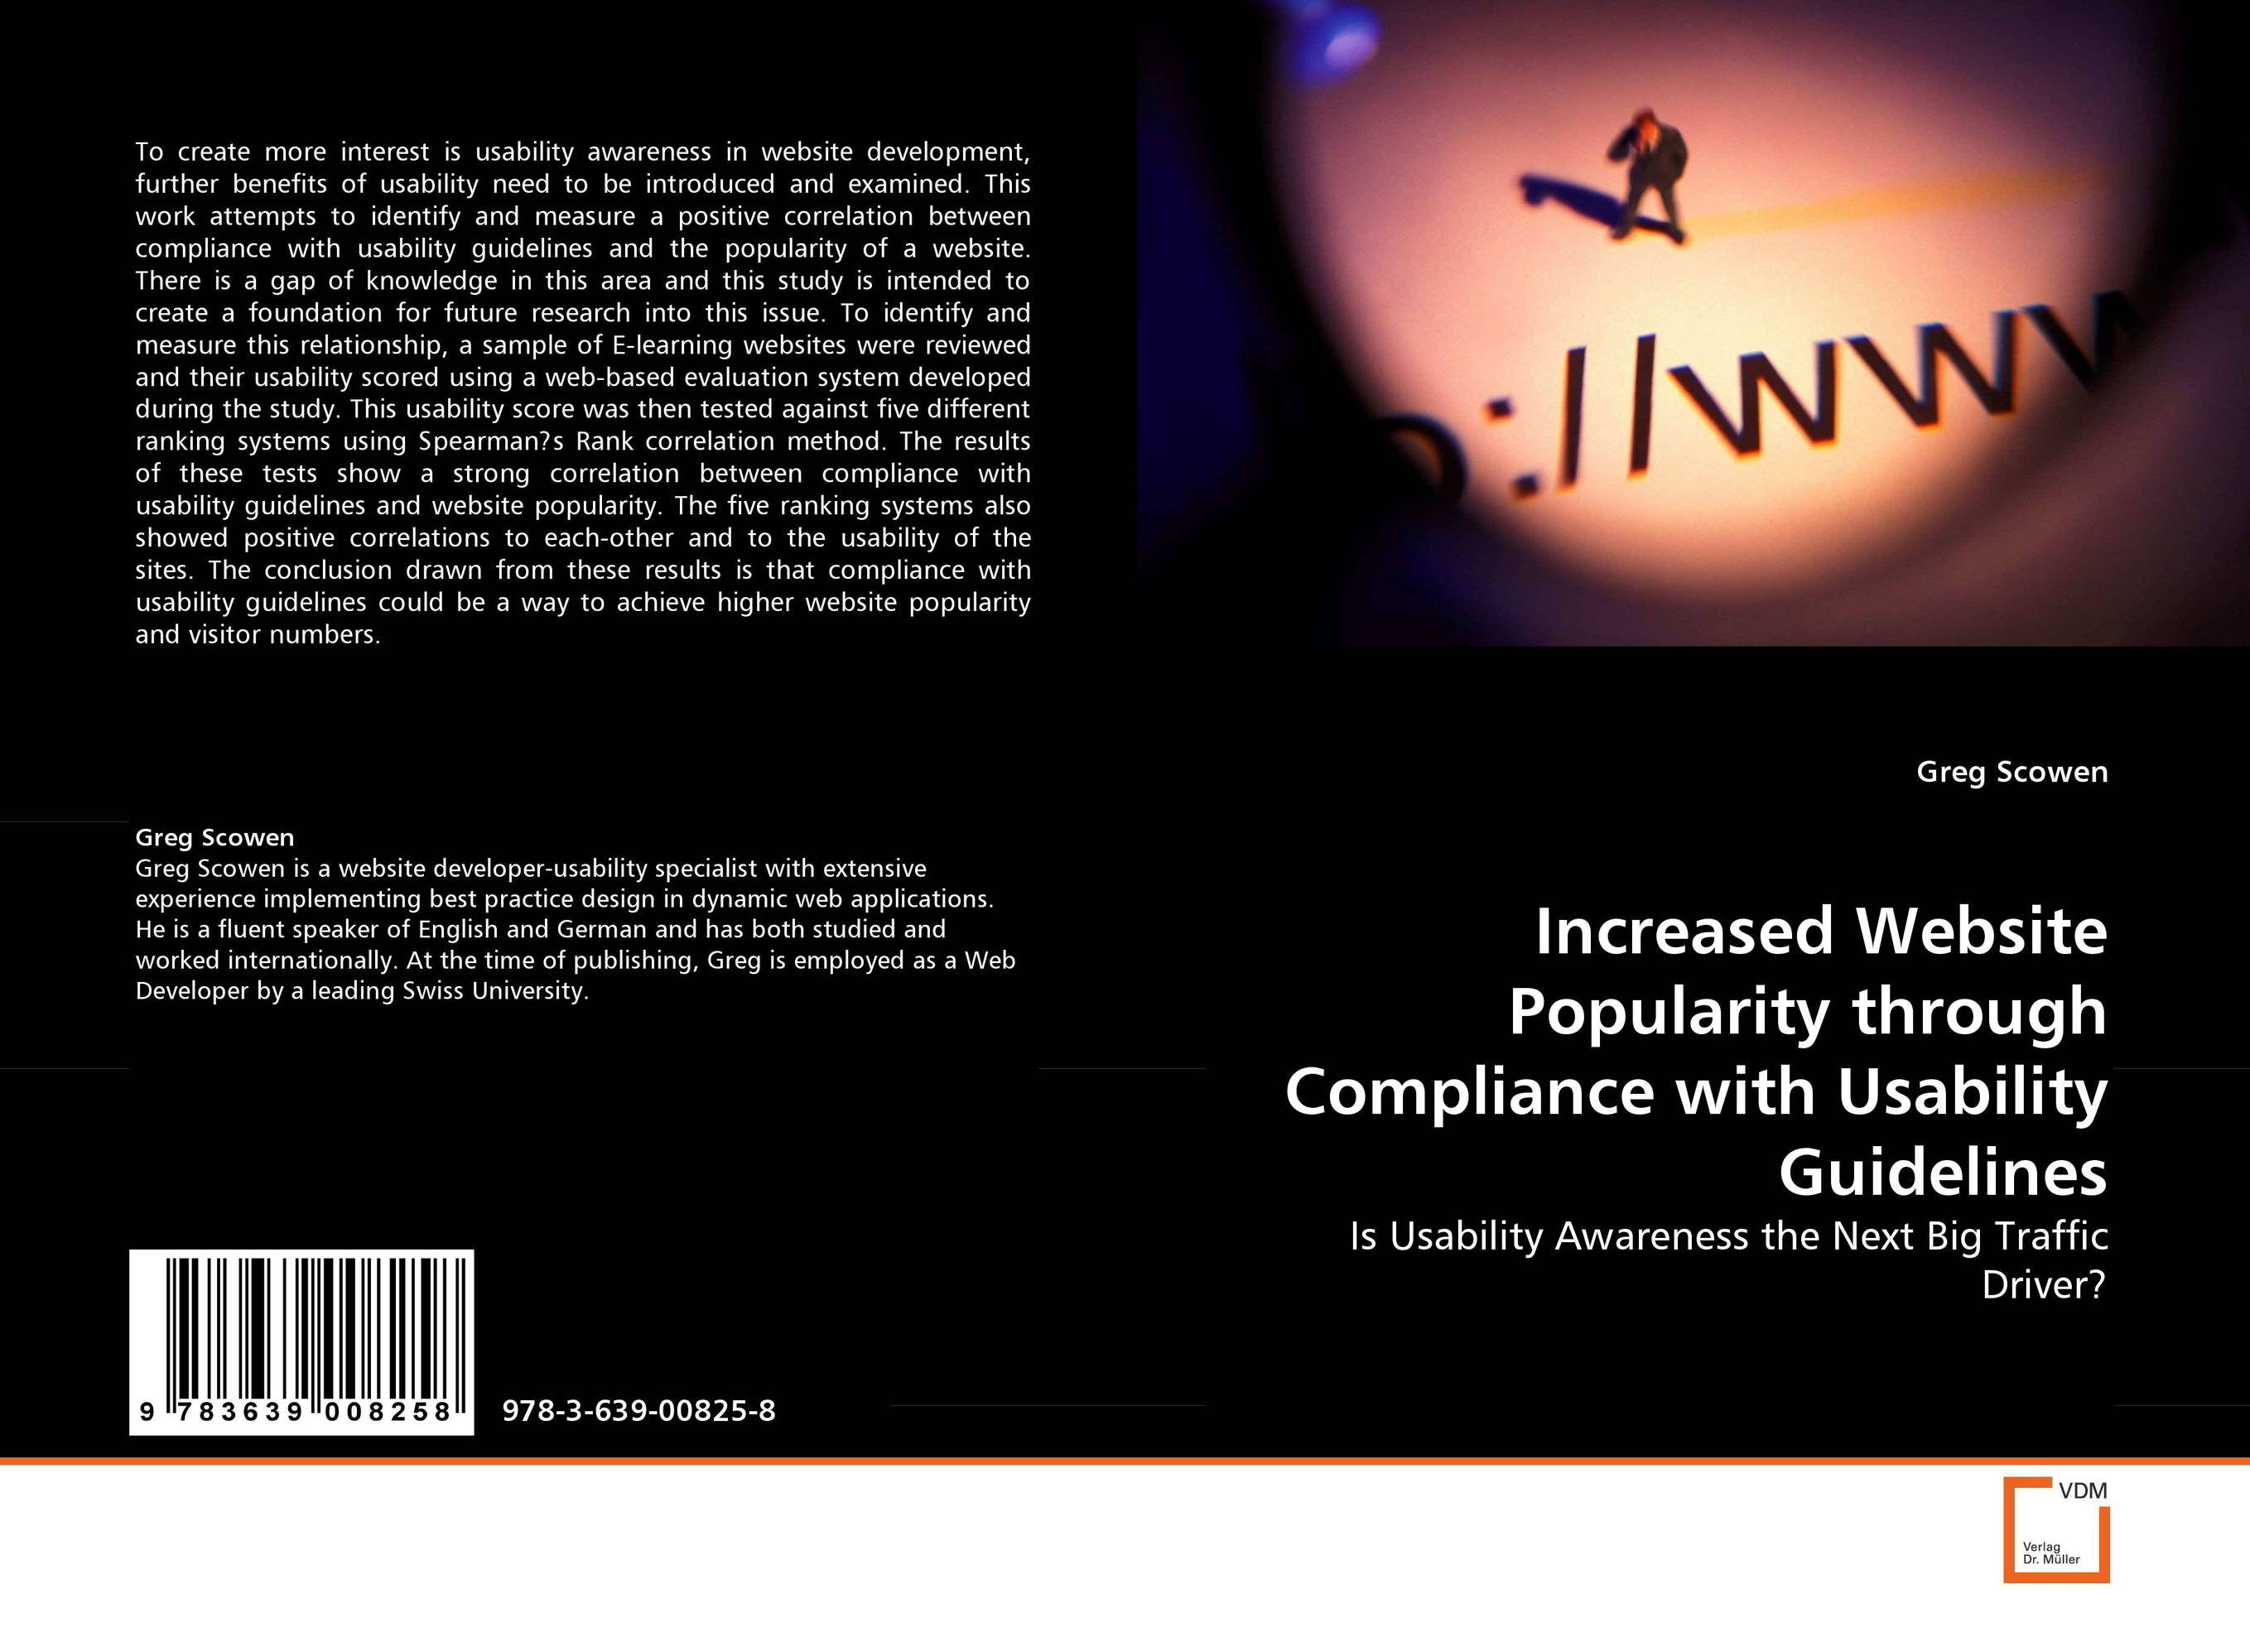 Increased Website Popularity through Compliance with Usability Guidelines